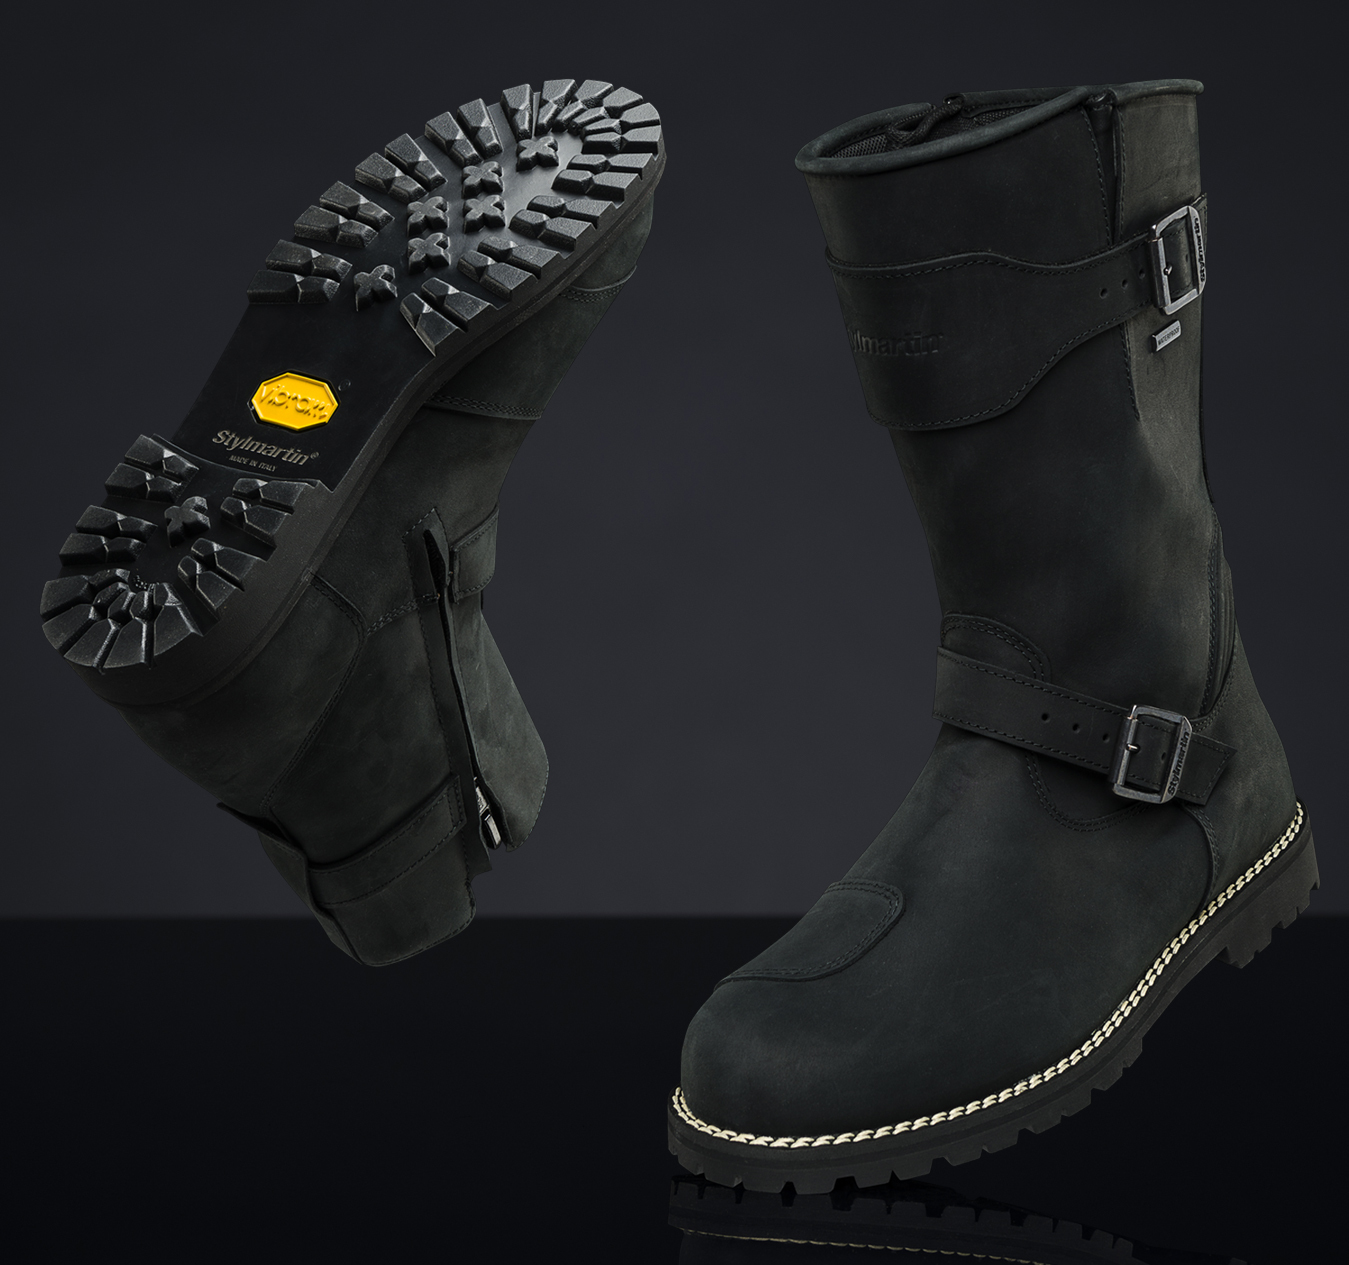 The new Stylmartin LEGEND EVO and MID WP touring bike boots are now online.